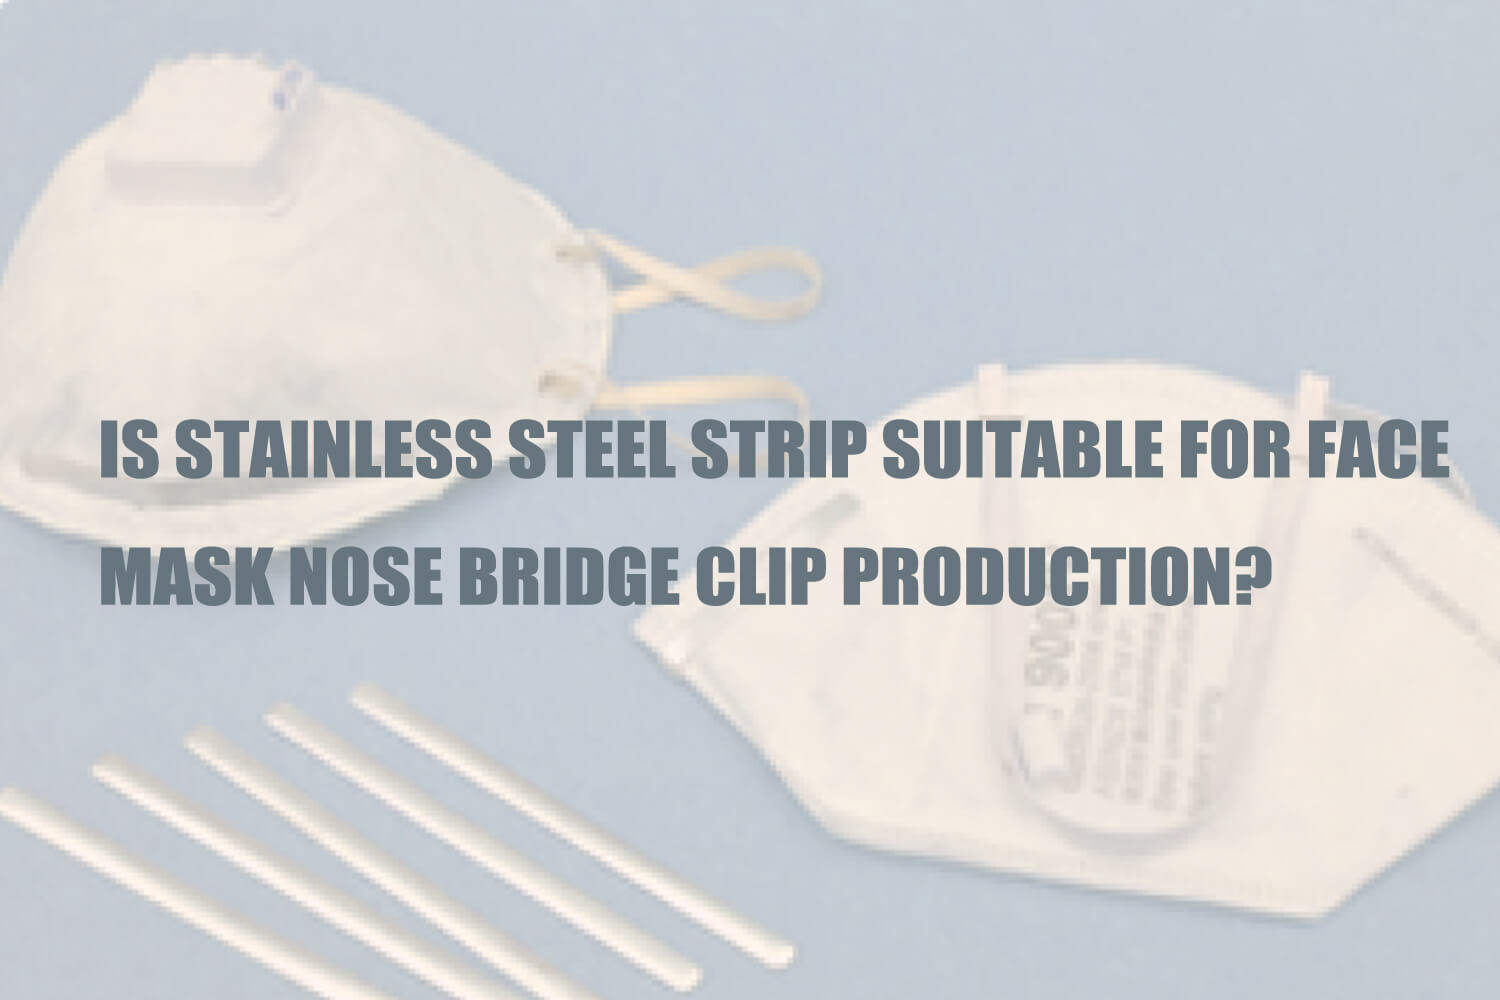 stainles-steel-strip-suitable-for-face-mask